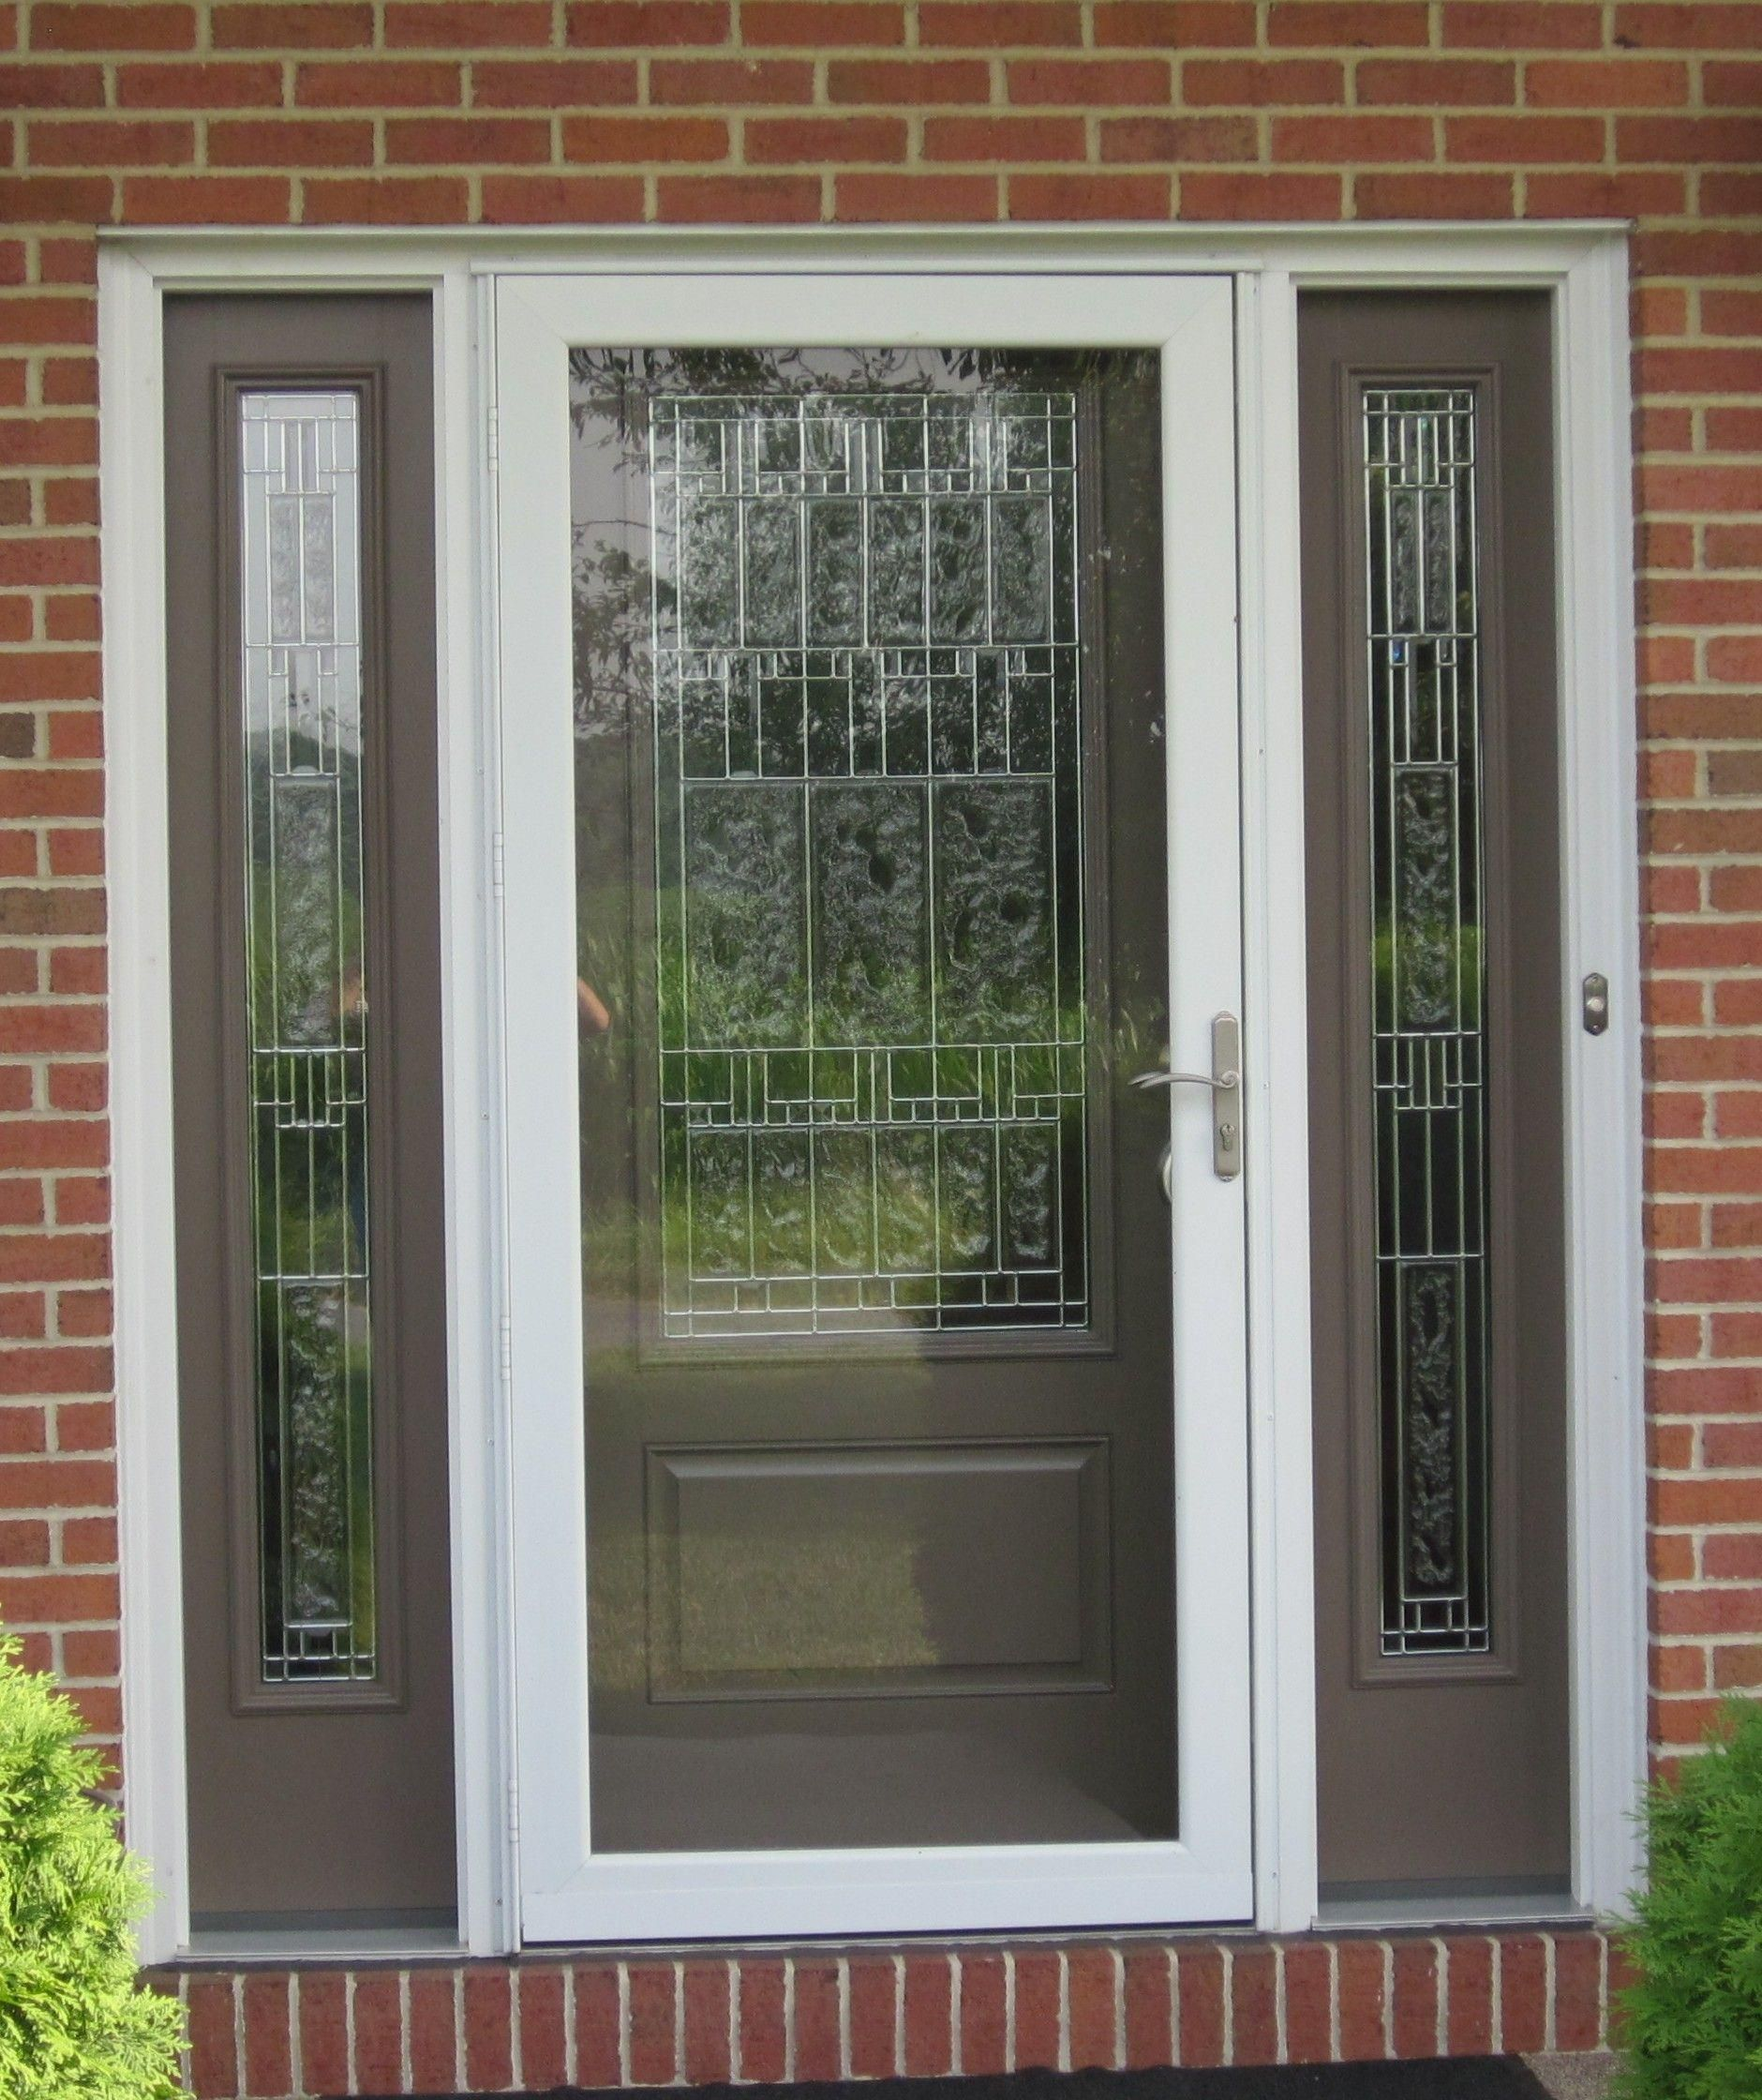 Captivating Lowes Exterior Doors Designs That Are Worth Seeing In 2020 Exterior Door Designs Fiberglass Entry Doors Exterior Doors For Sale Our feather river fiberglass door system is a marriage of low maintenance fiberglass with timeless warmth of woodgrain patterns. pinterest